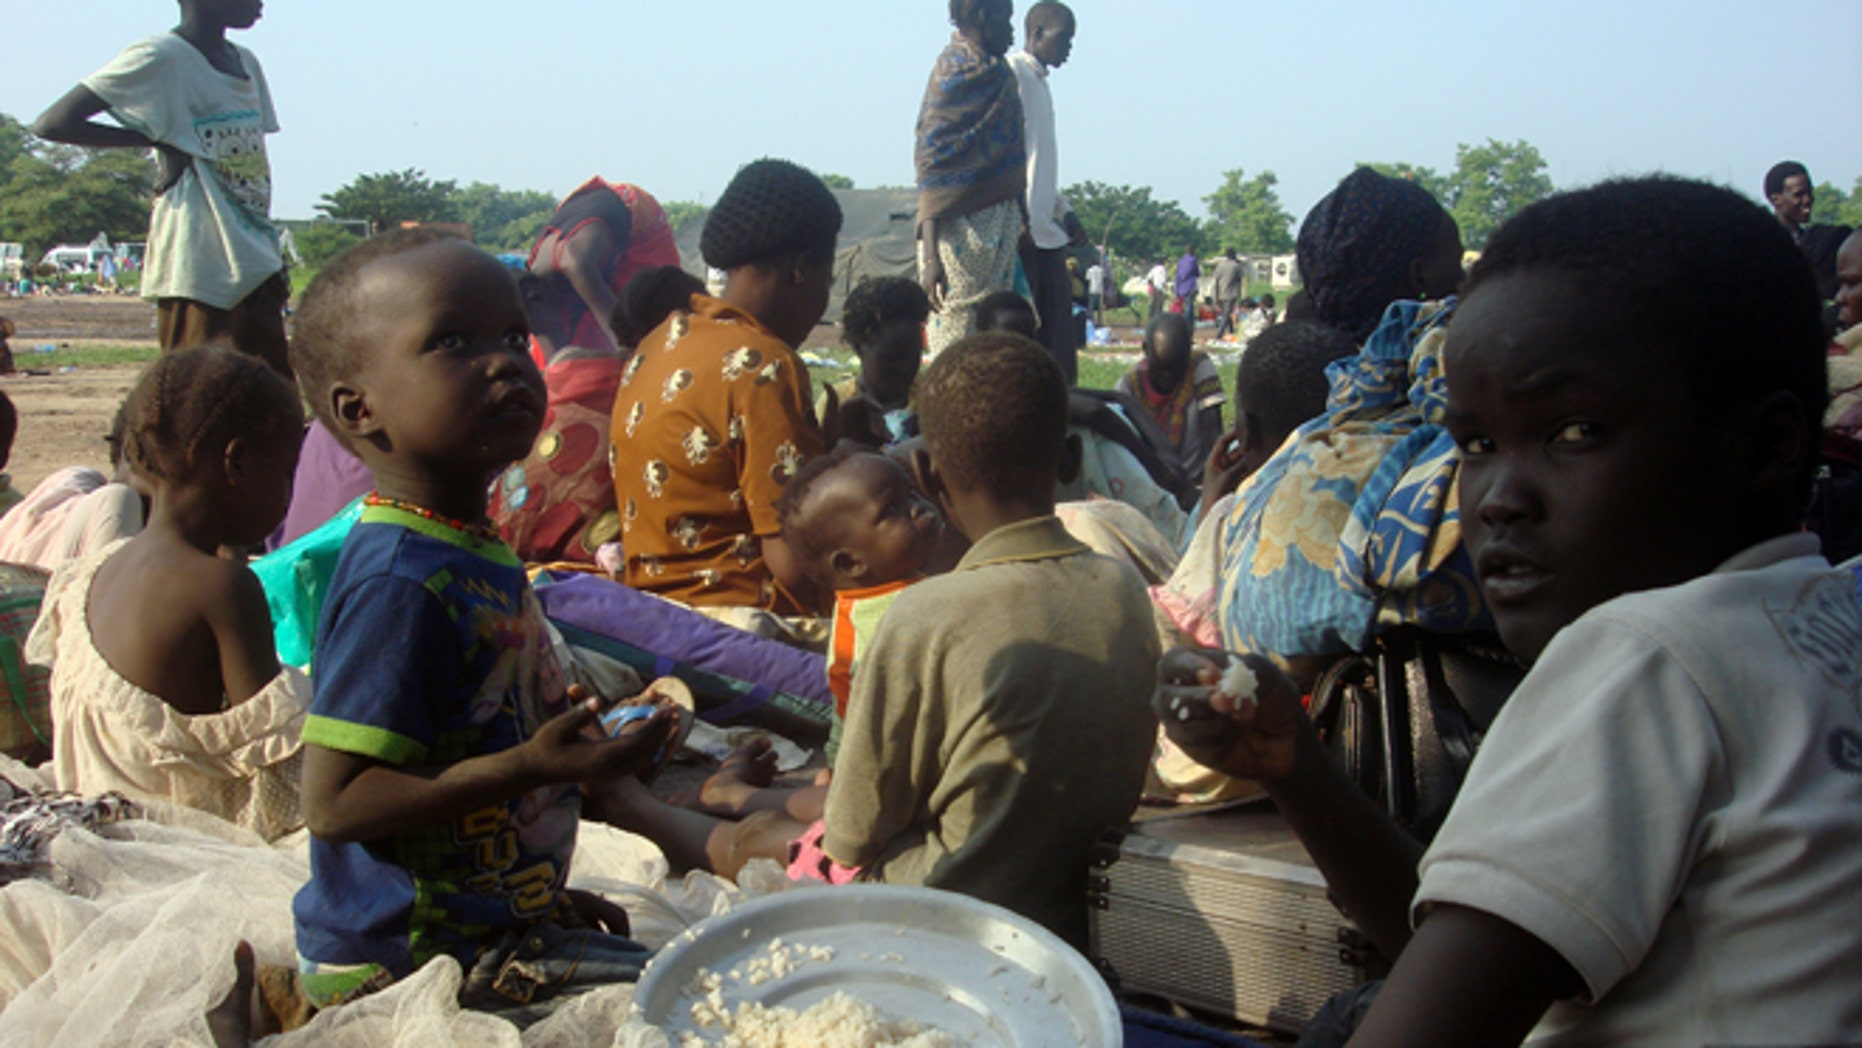 July 11: Displaced South Sudanese families seen in a camp for internally displaced people in the U.N. Mission in the country.